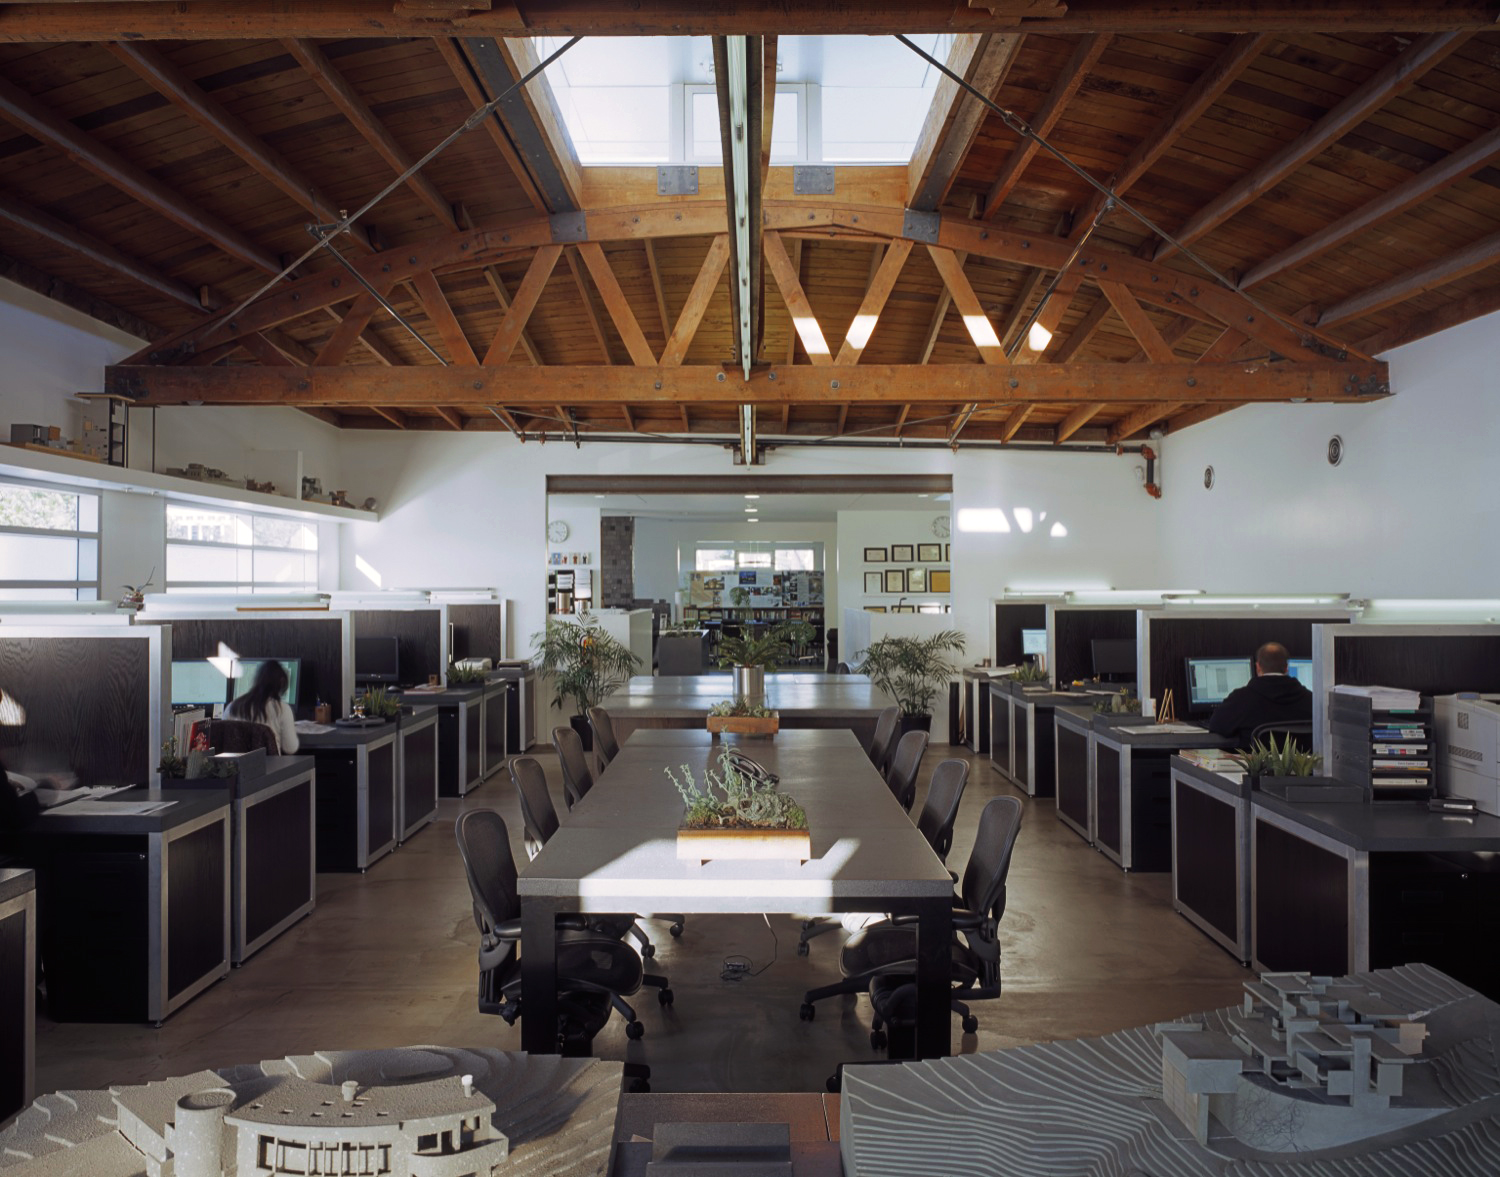 S.E.A.-Studio-Environmental-Architecture-David-Hertz-FAIA-1920-Olympic-Santa-Monica-adaptive-reuse-sustainable-regenerative-restorative-green-design-warehouse-truss-upcycle-recycle-creative-office-commercial-building-life-cycle-LEED-platinum-6.jpg